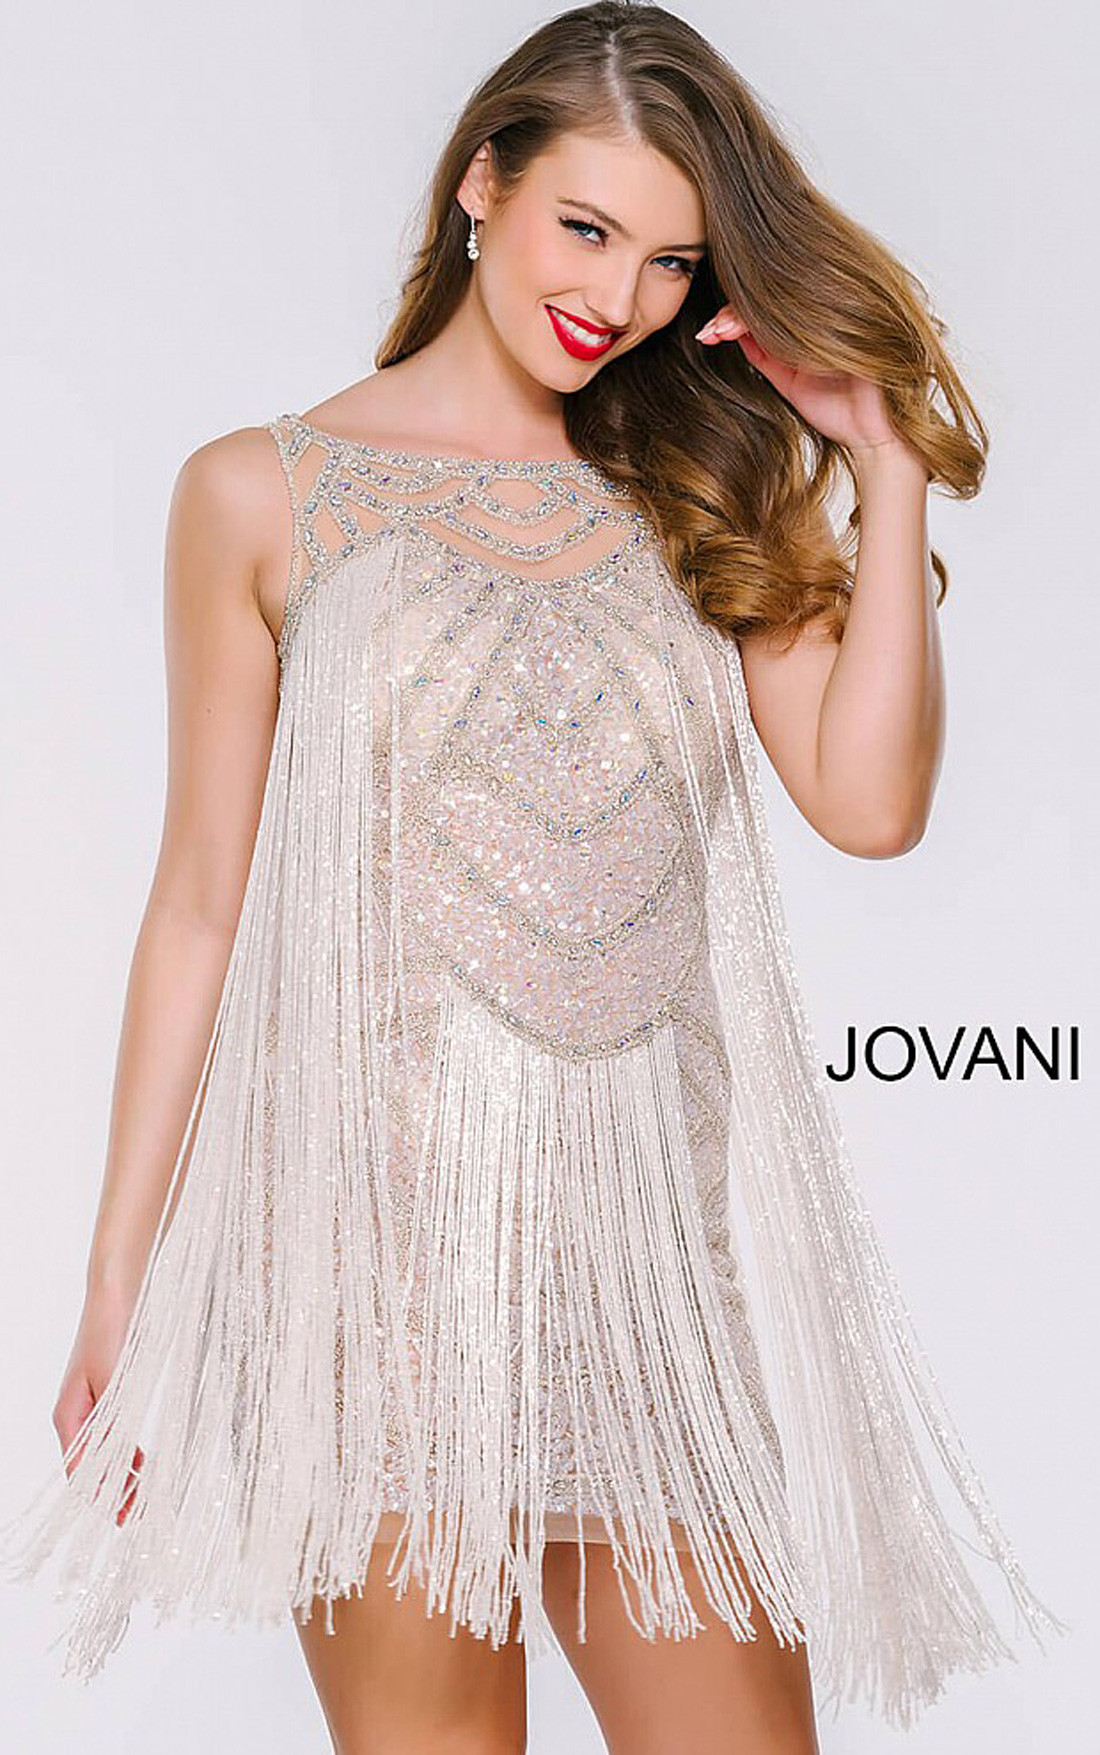 583e366c1fd Jovani - Sleeveless Fringe Cocktail Dress (41061) ...